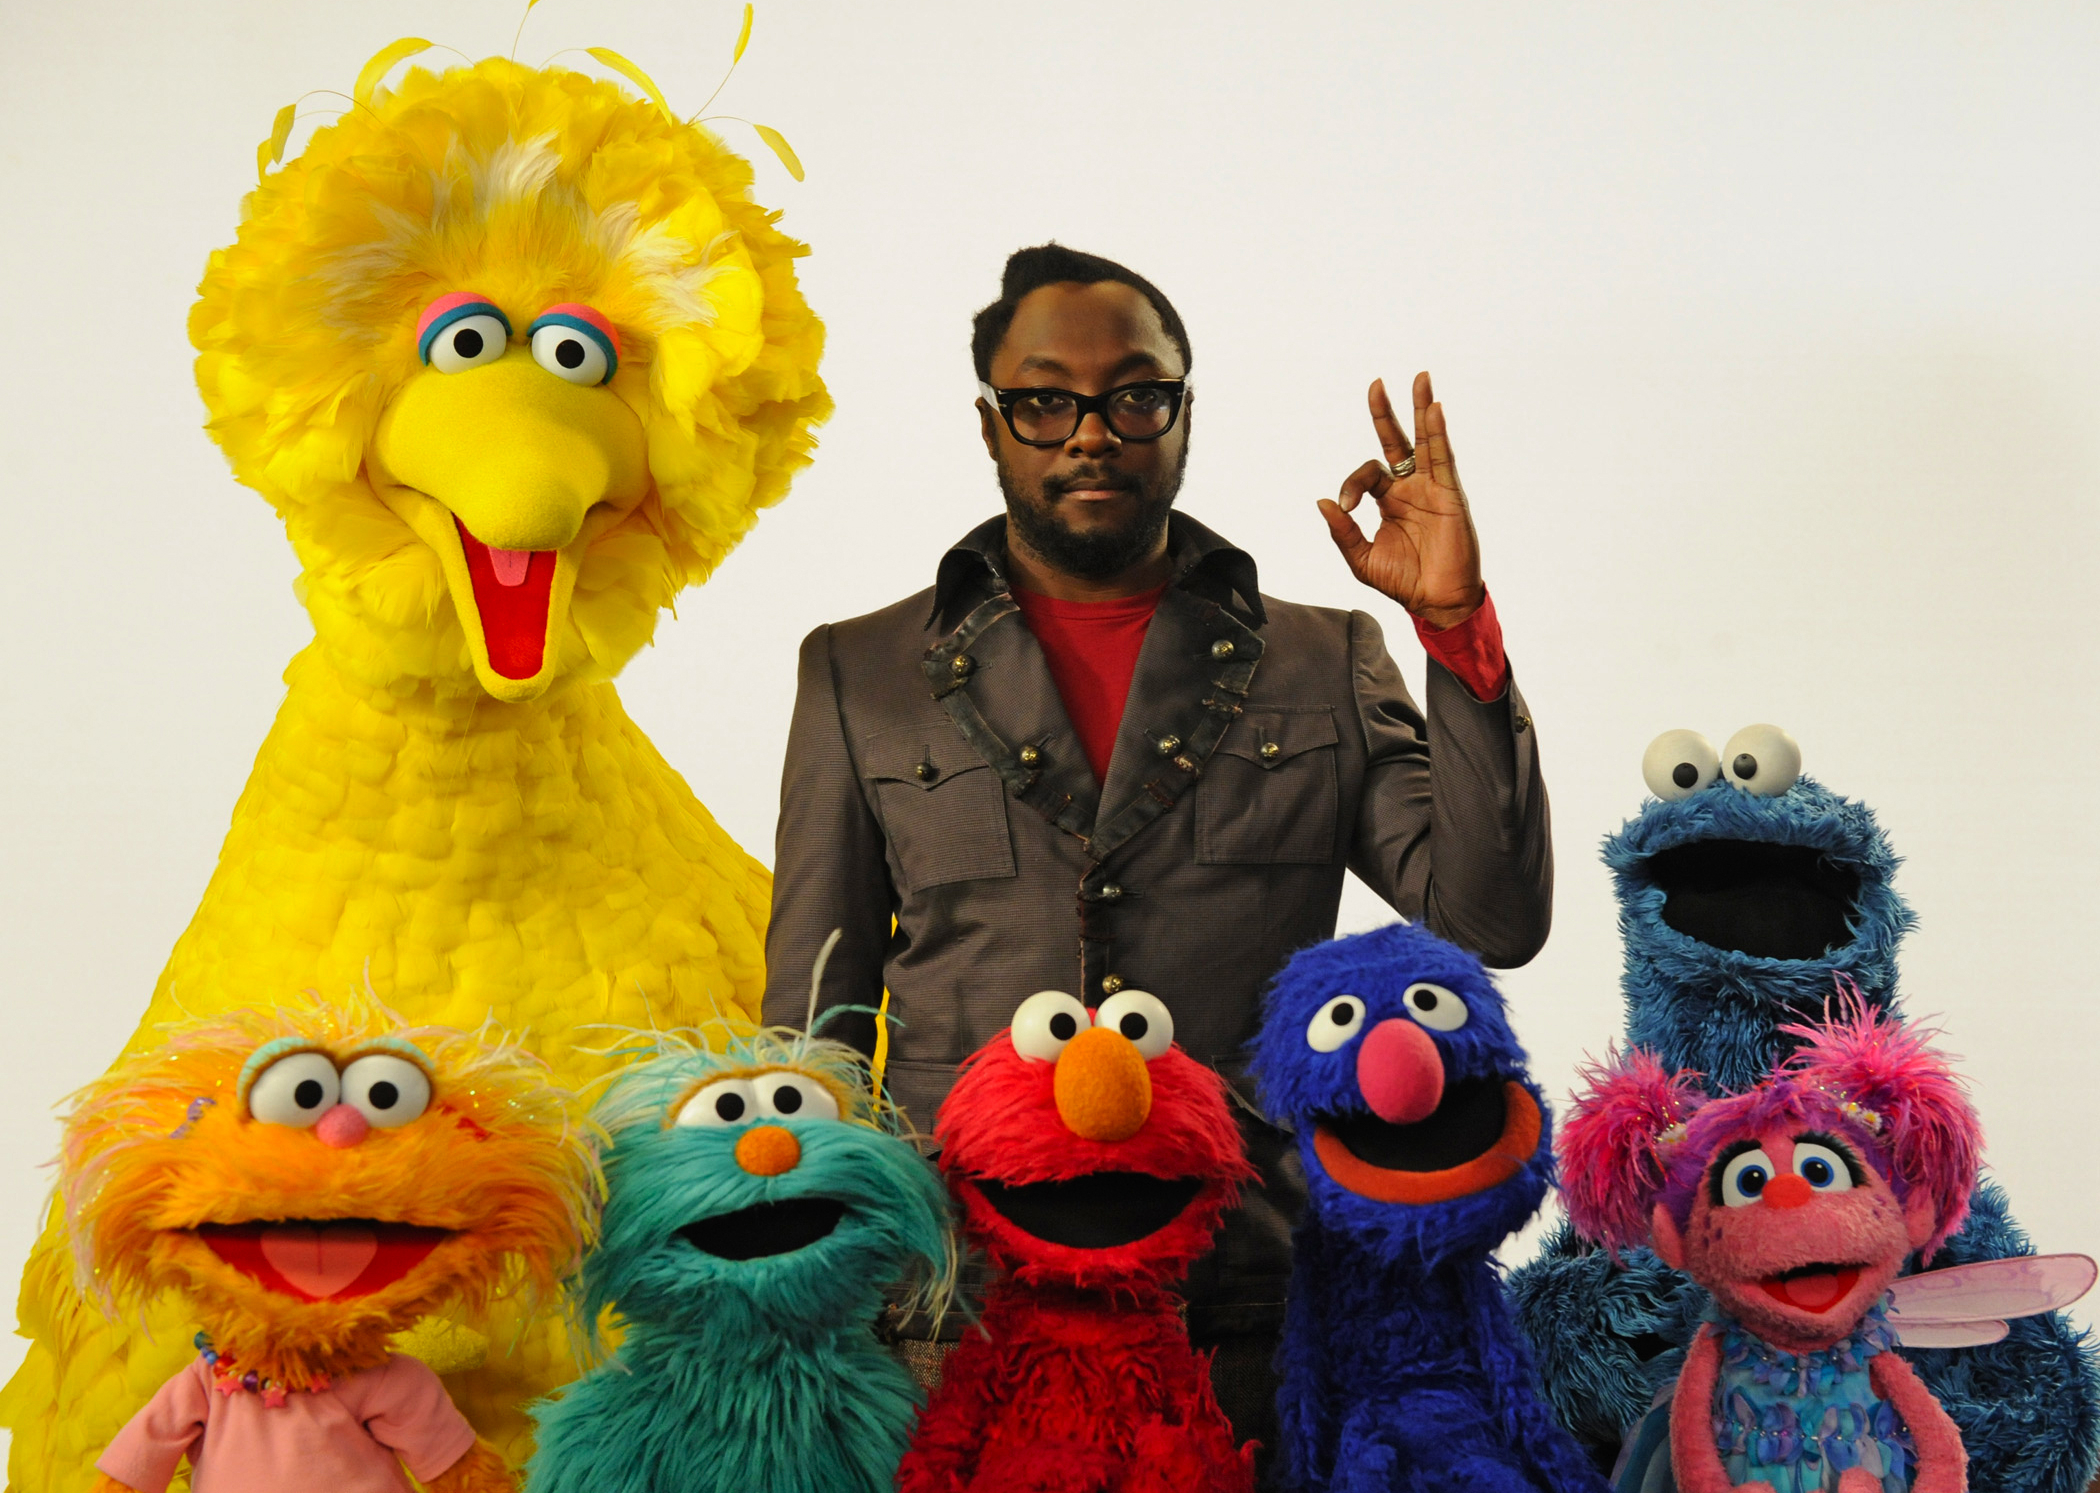 File:Will.i.am-Muppets.jpg